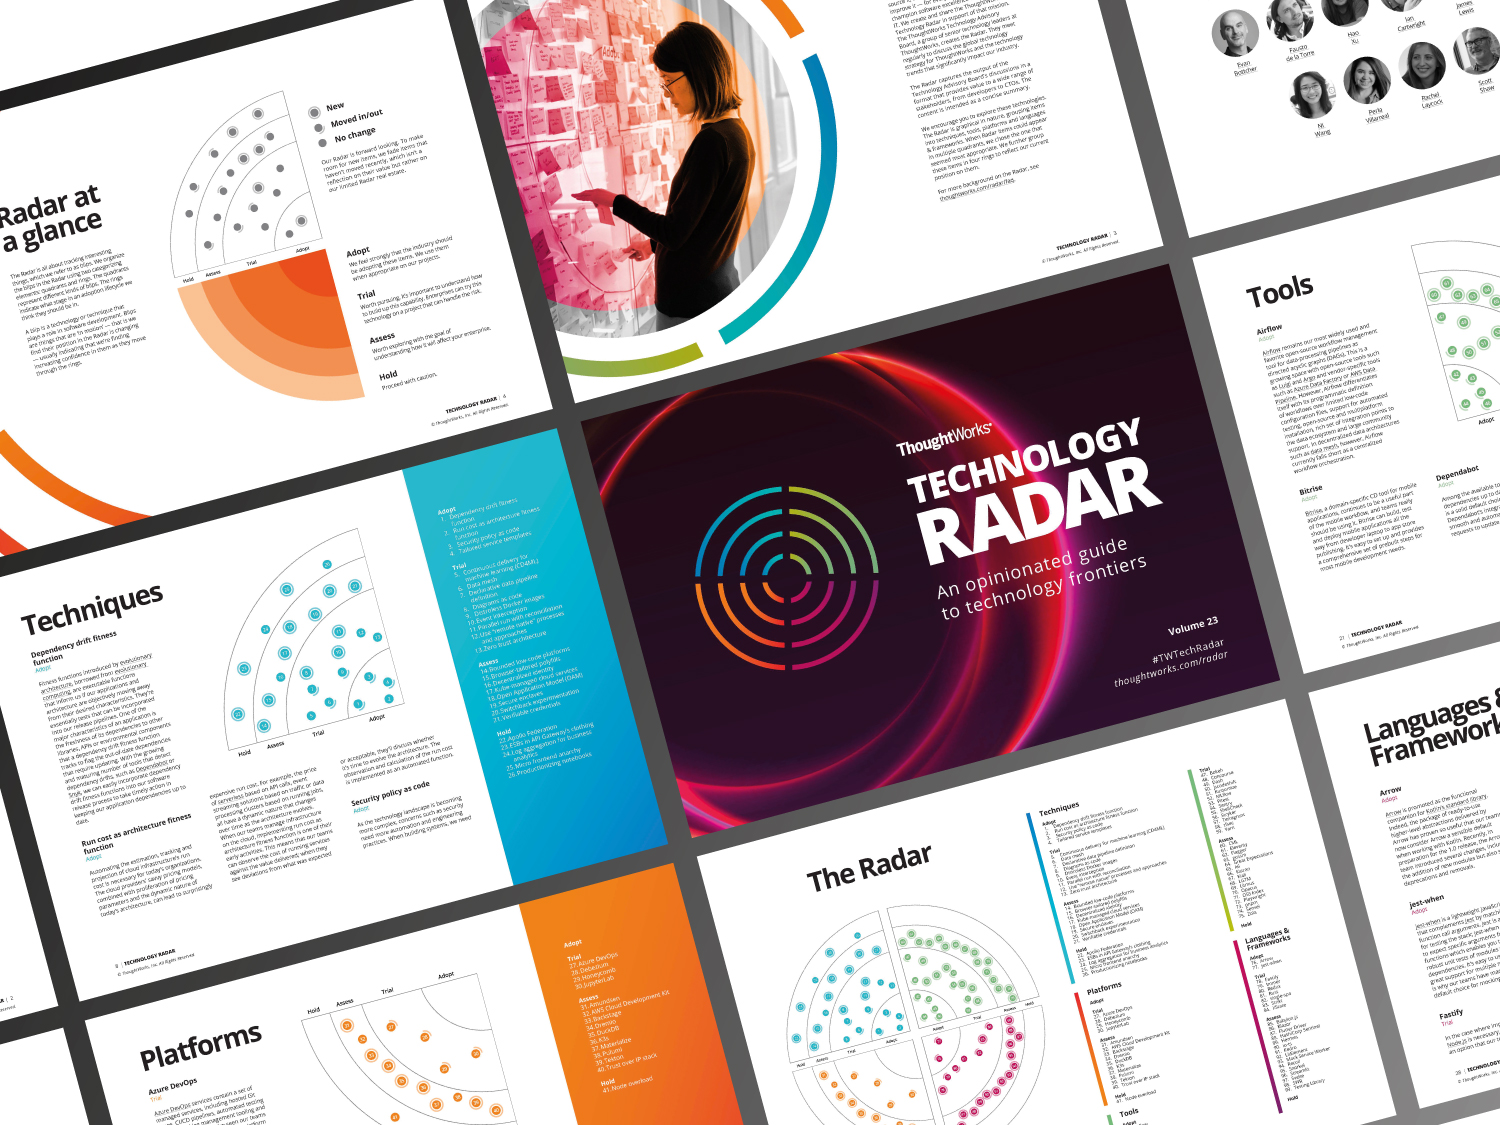 Download the Radar or browse the online interactive version